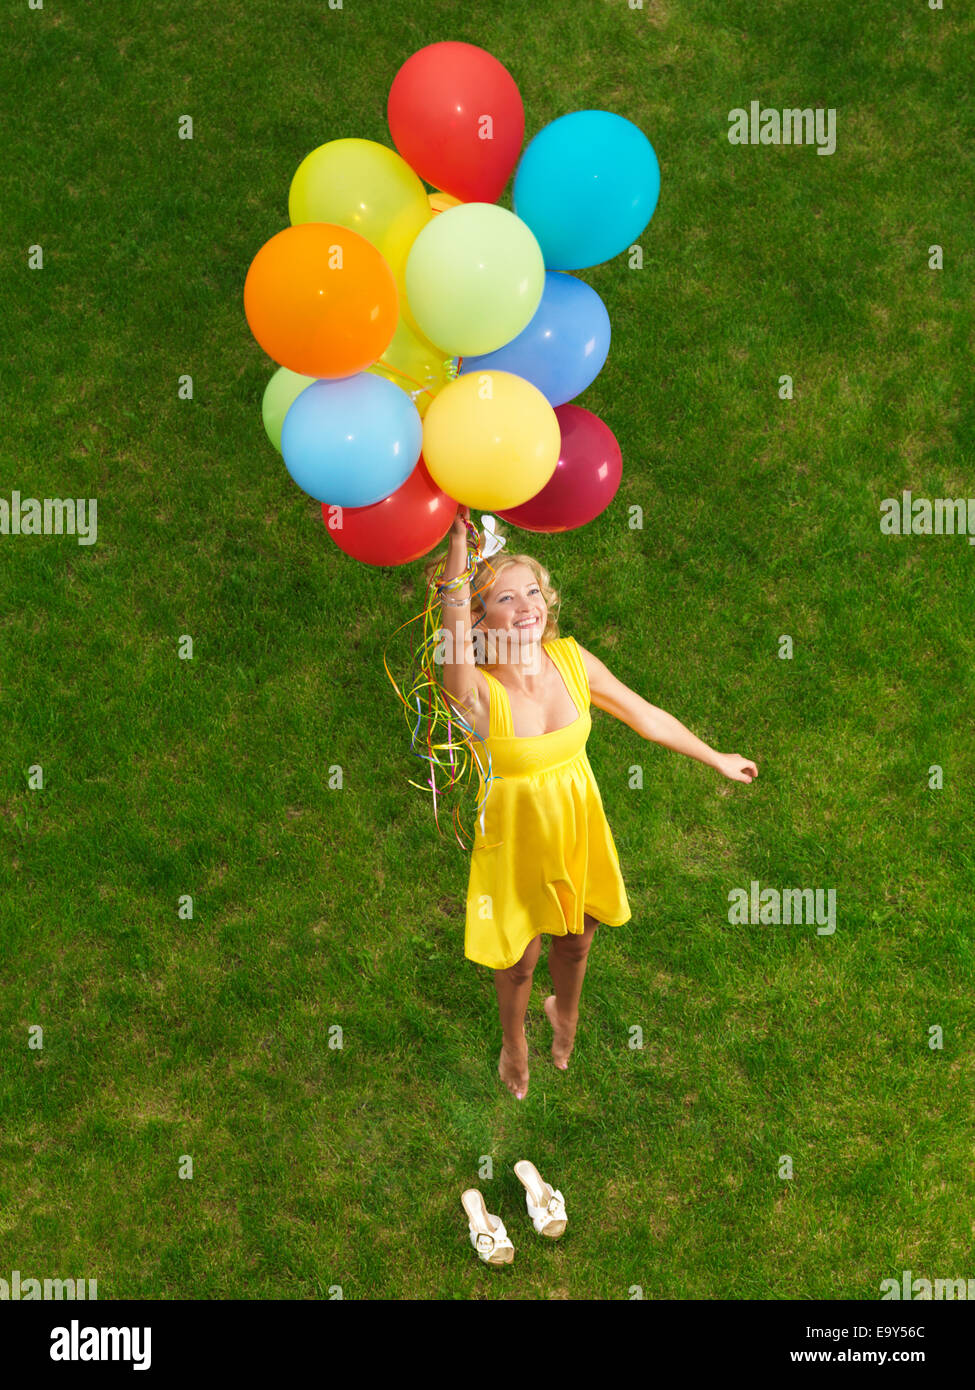 Young happy woman flying up from the ground on colorful air balloons - Stock Image